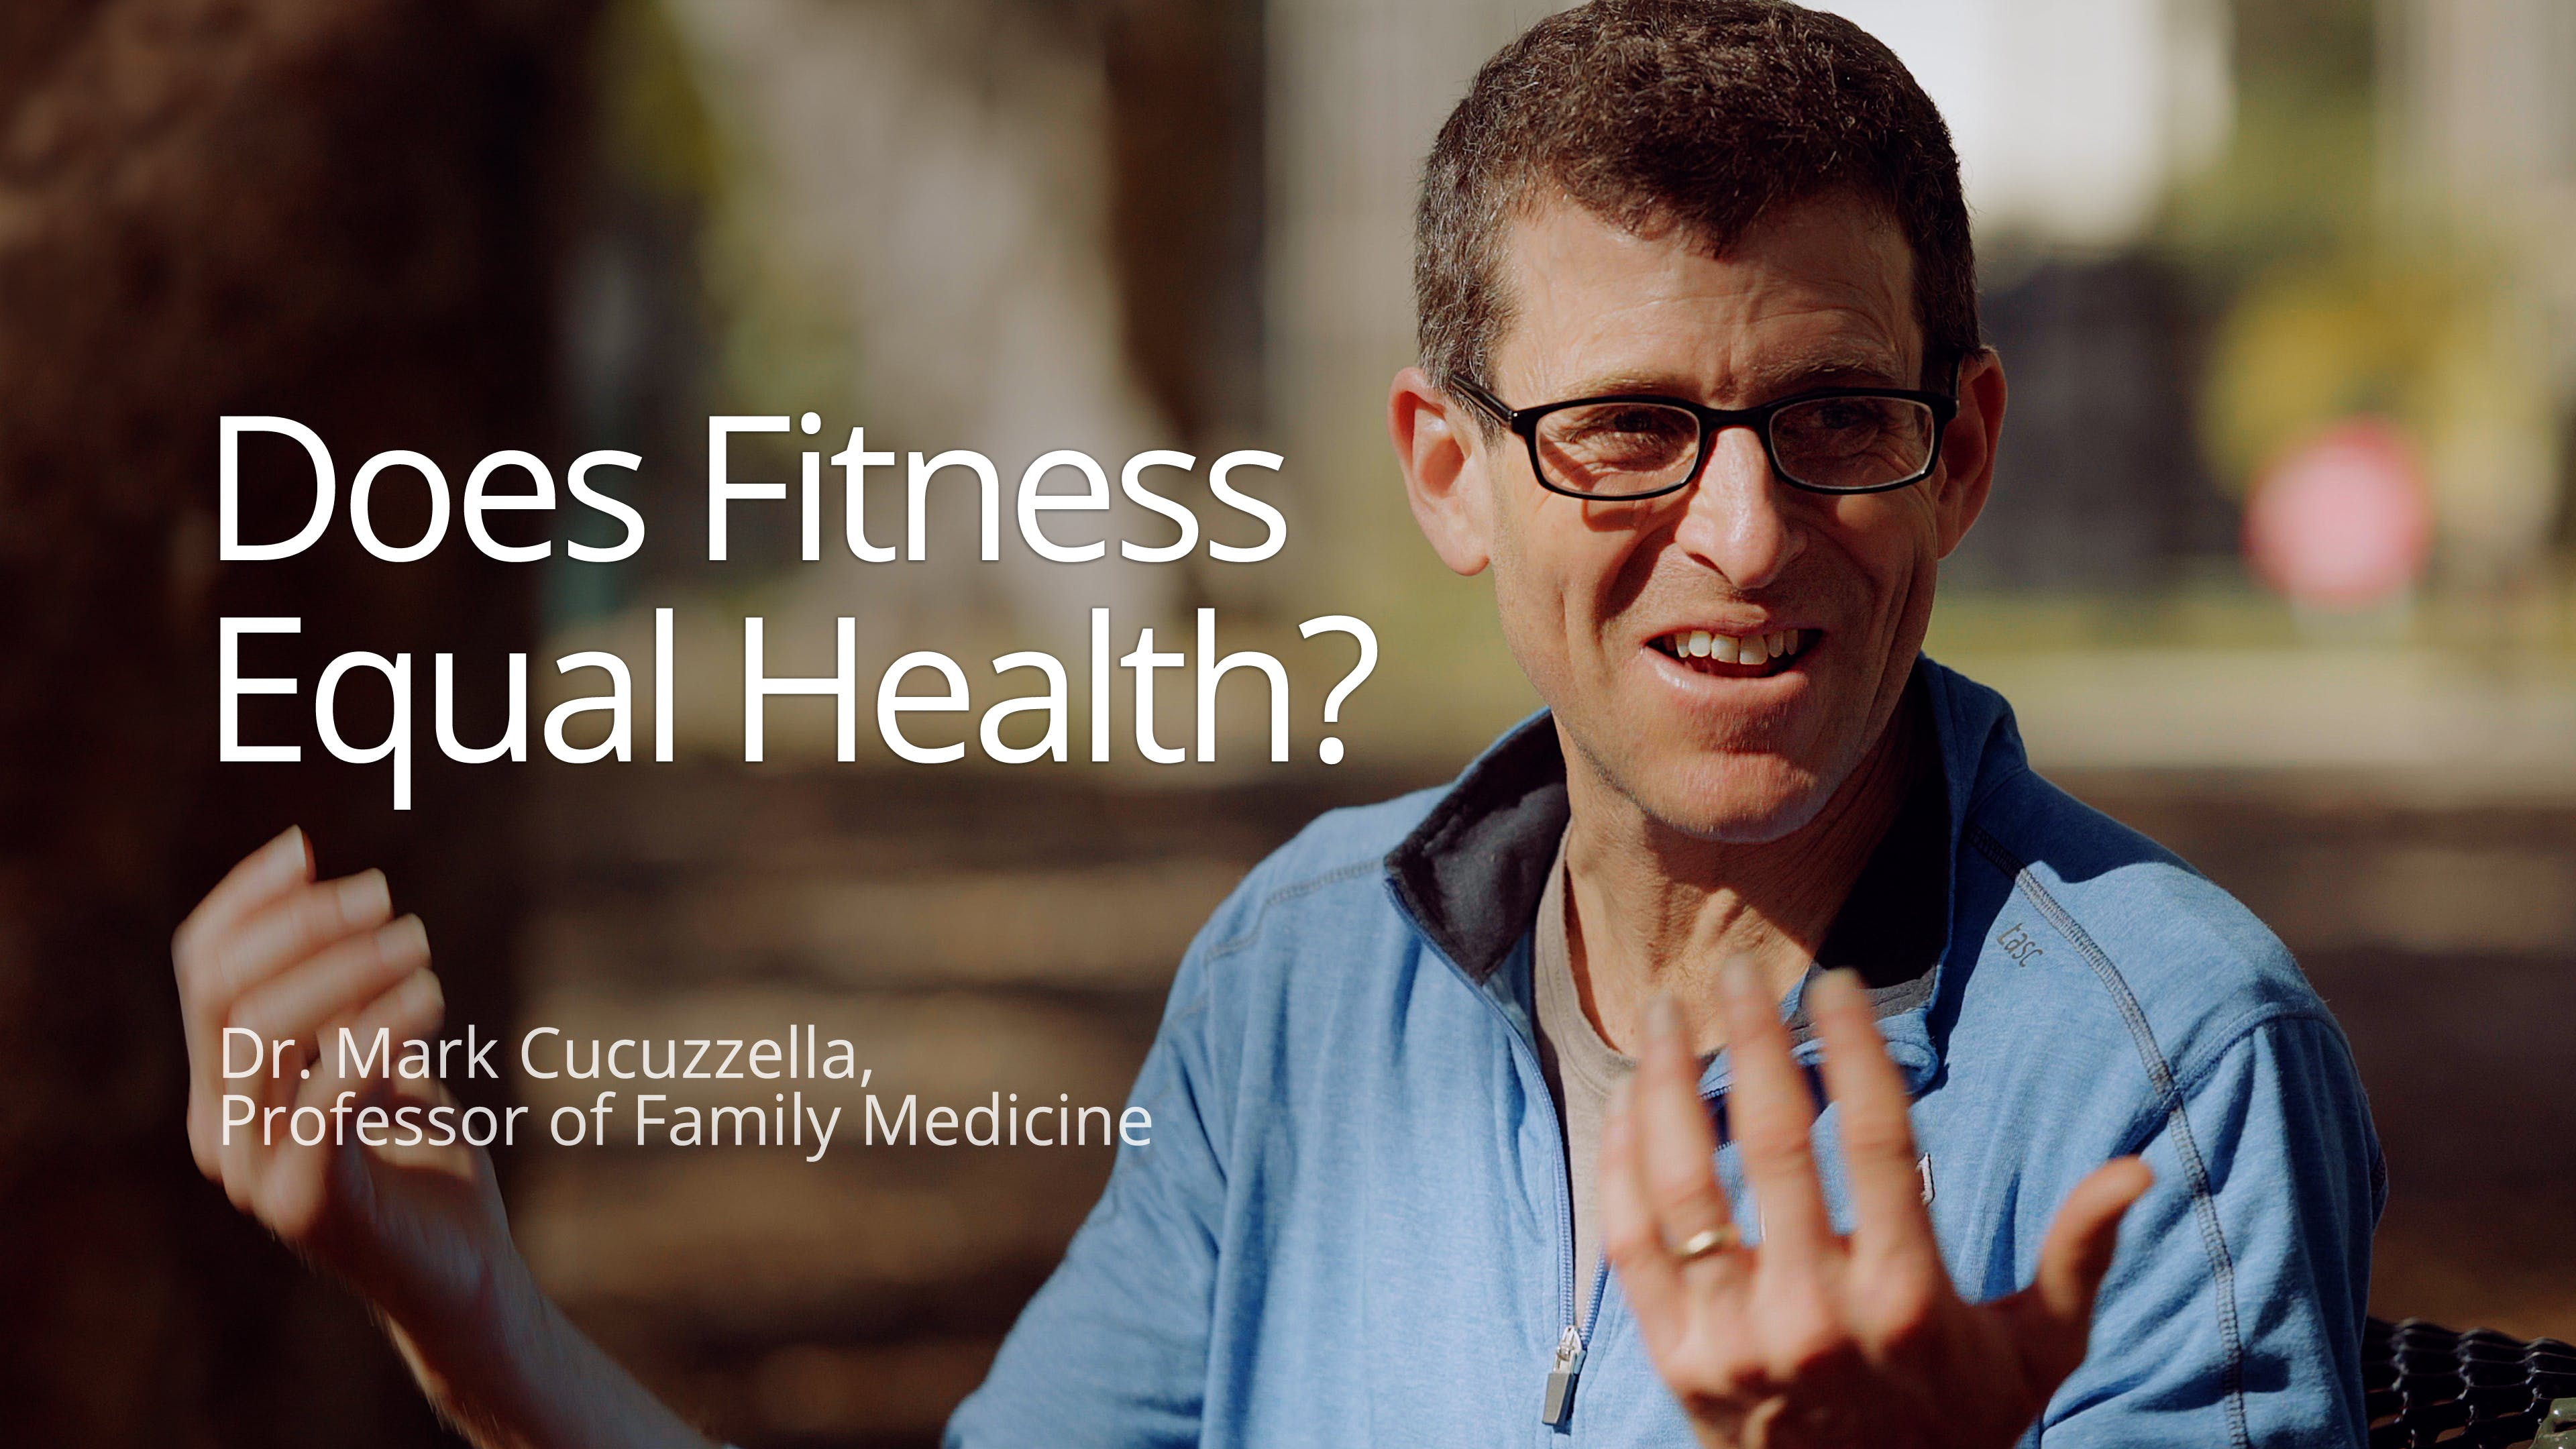 Does fitness equal health?